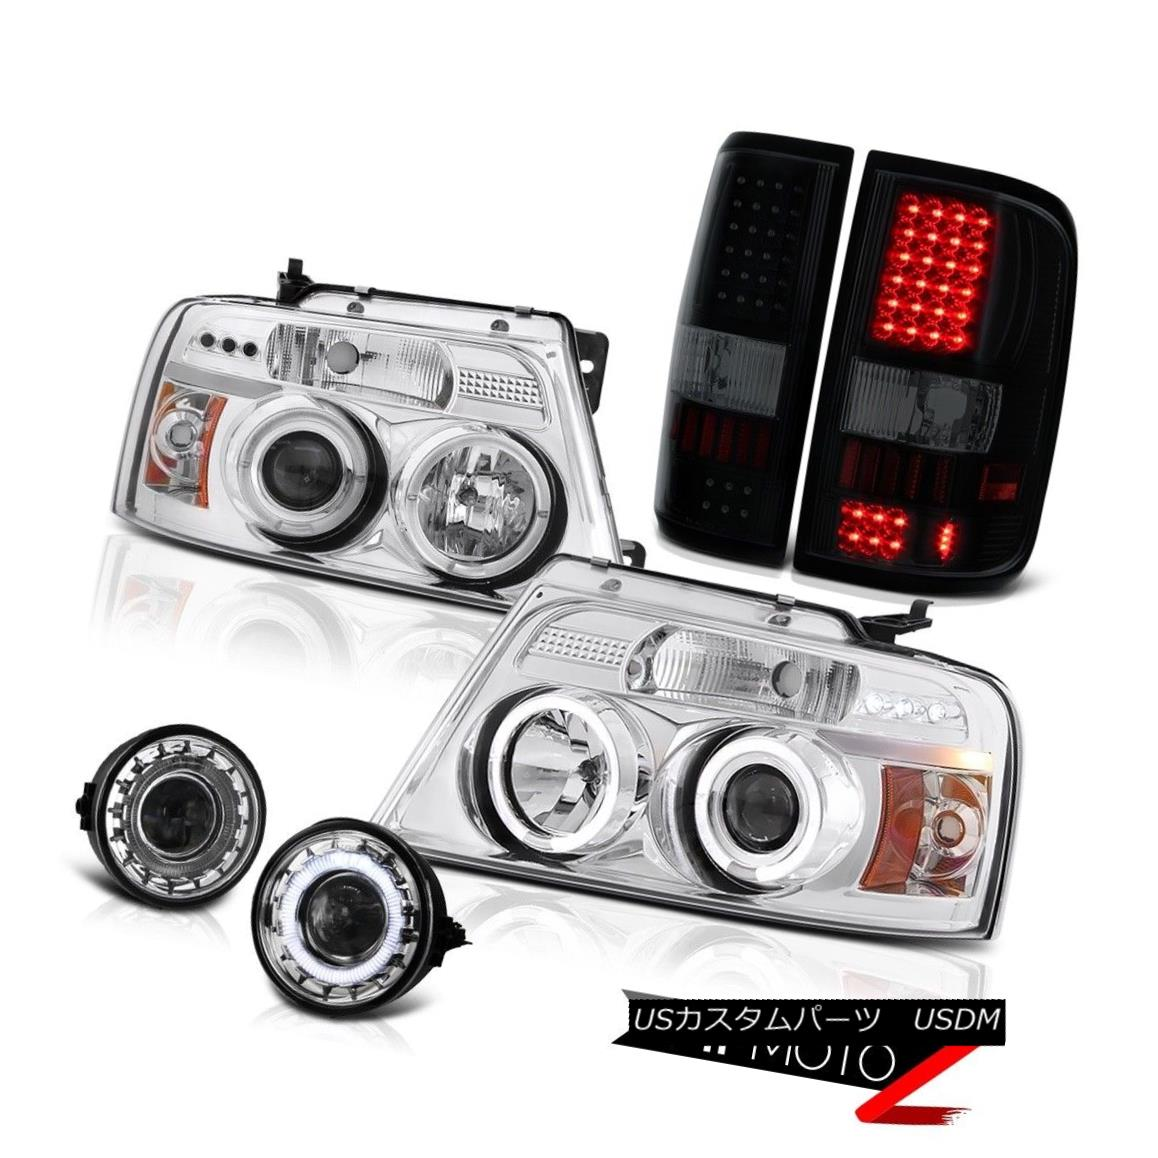 テールライト 06-08 Ford F150 FX4 Fog Lights Tail Headlamps LED Halo Rim Dual Halo